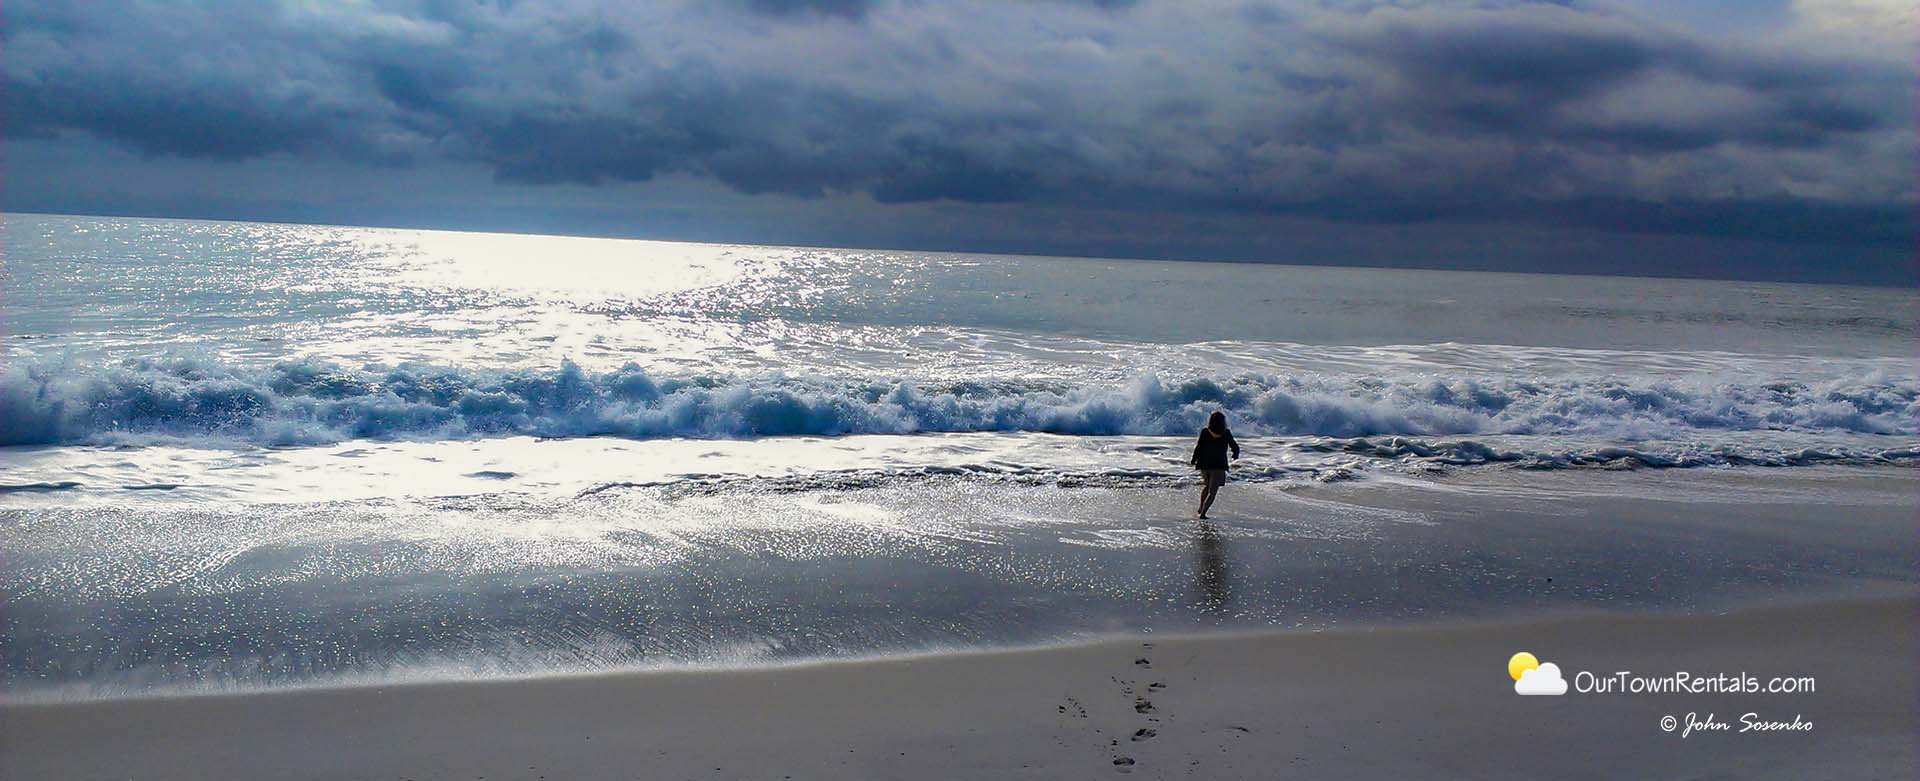 SEE WINTER RENTALS ON JERSEY SHORE FOR EXTENDED STAY